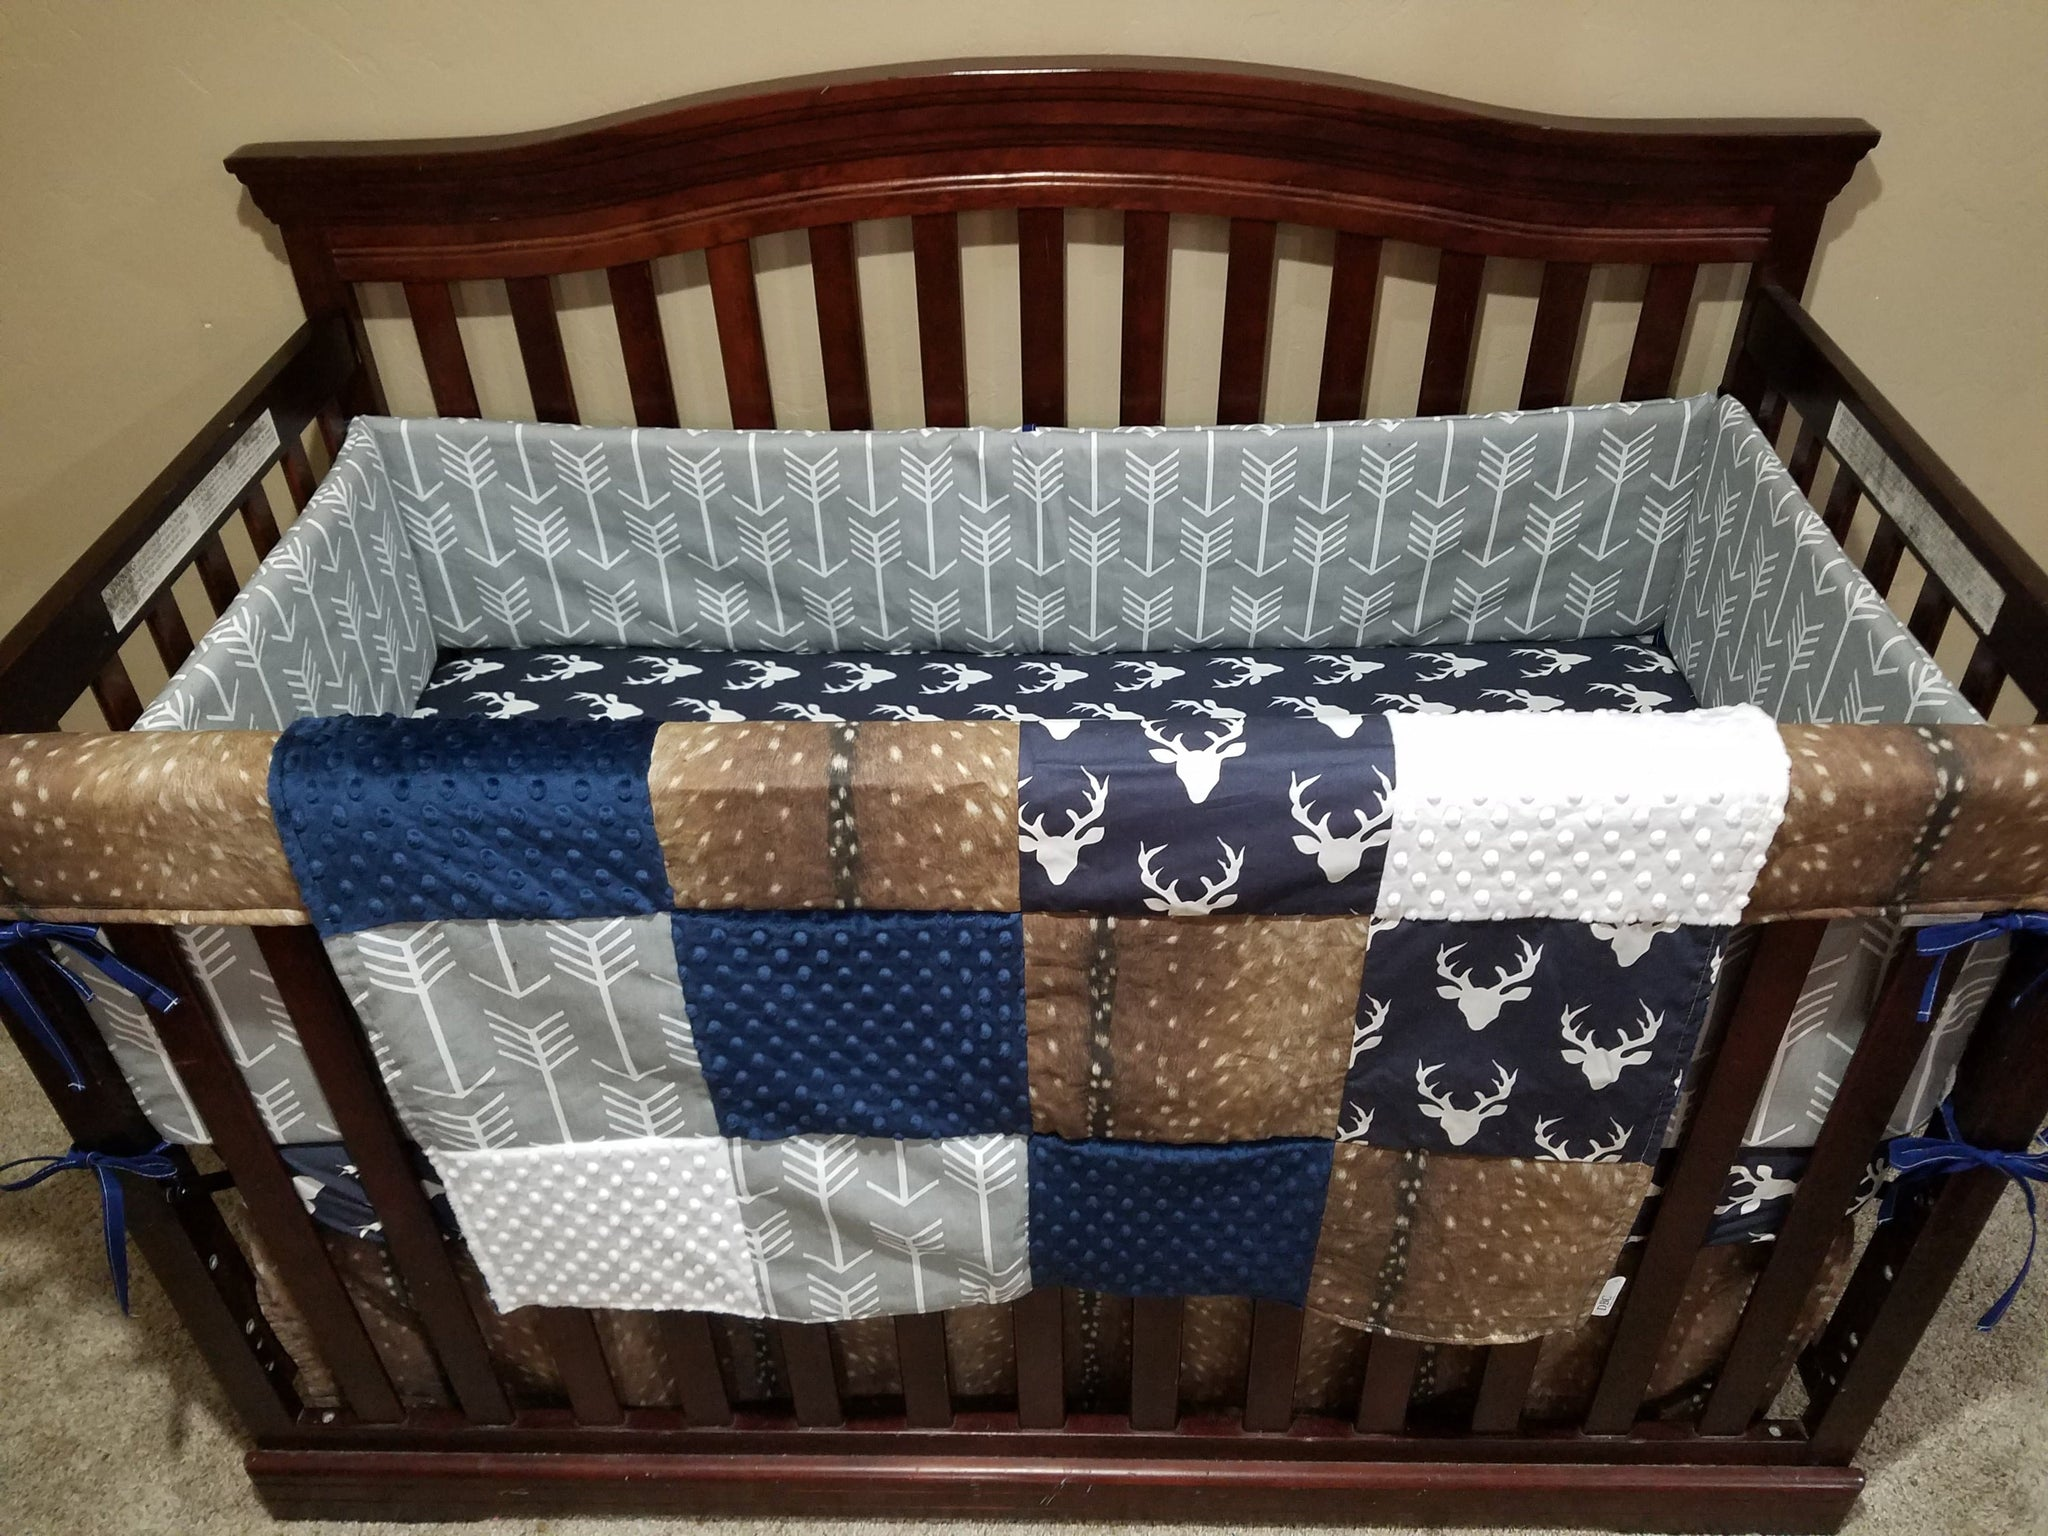 2 Day Ship Baby Boy Crib Bedding Navy Buck Deer Skin